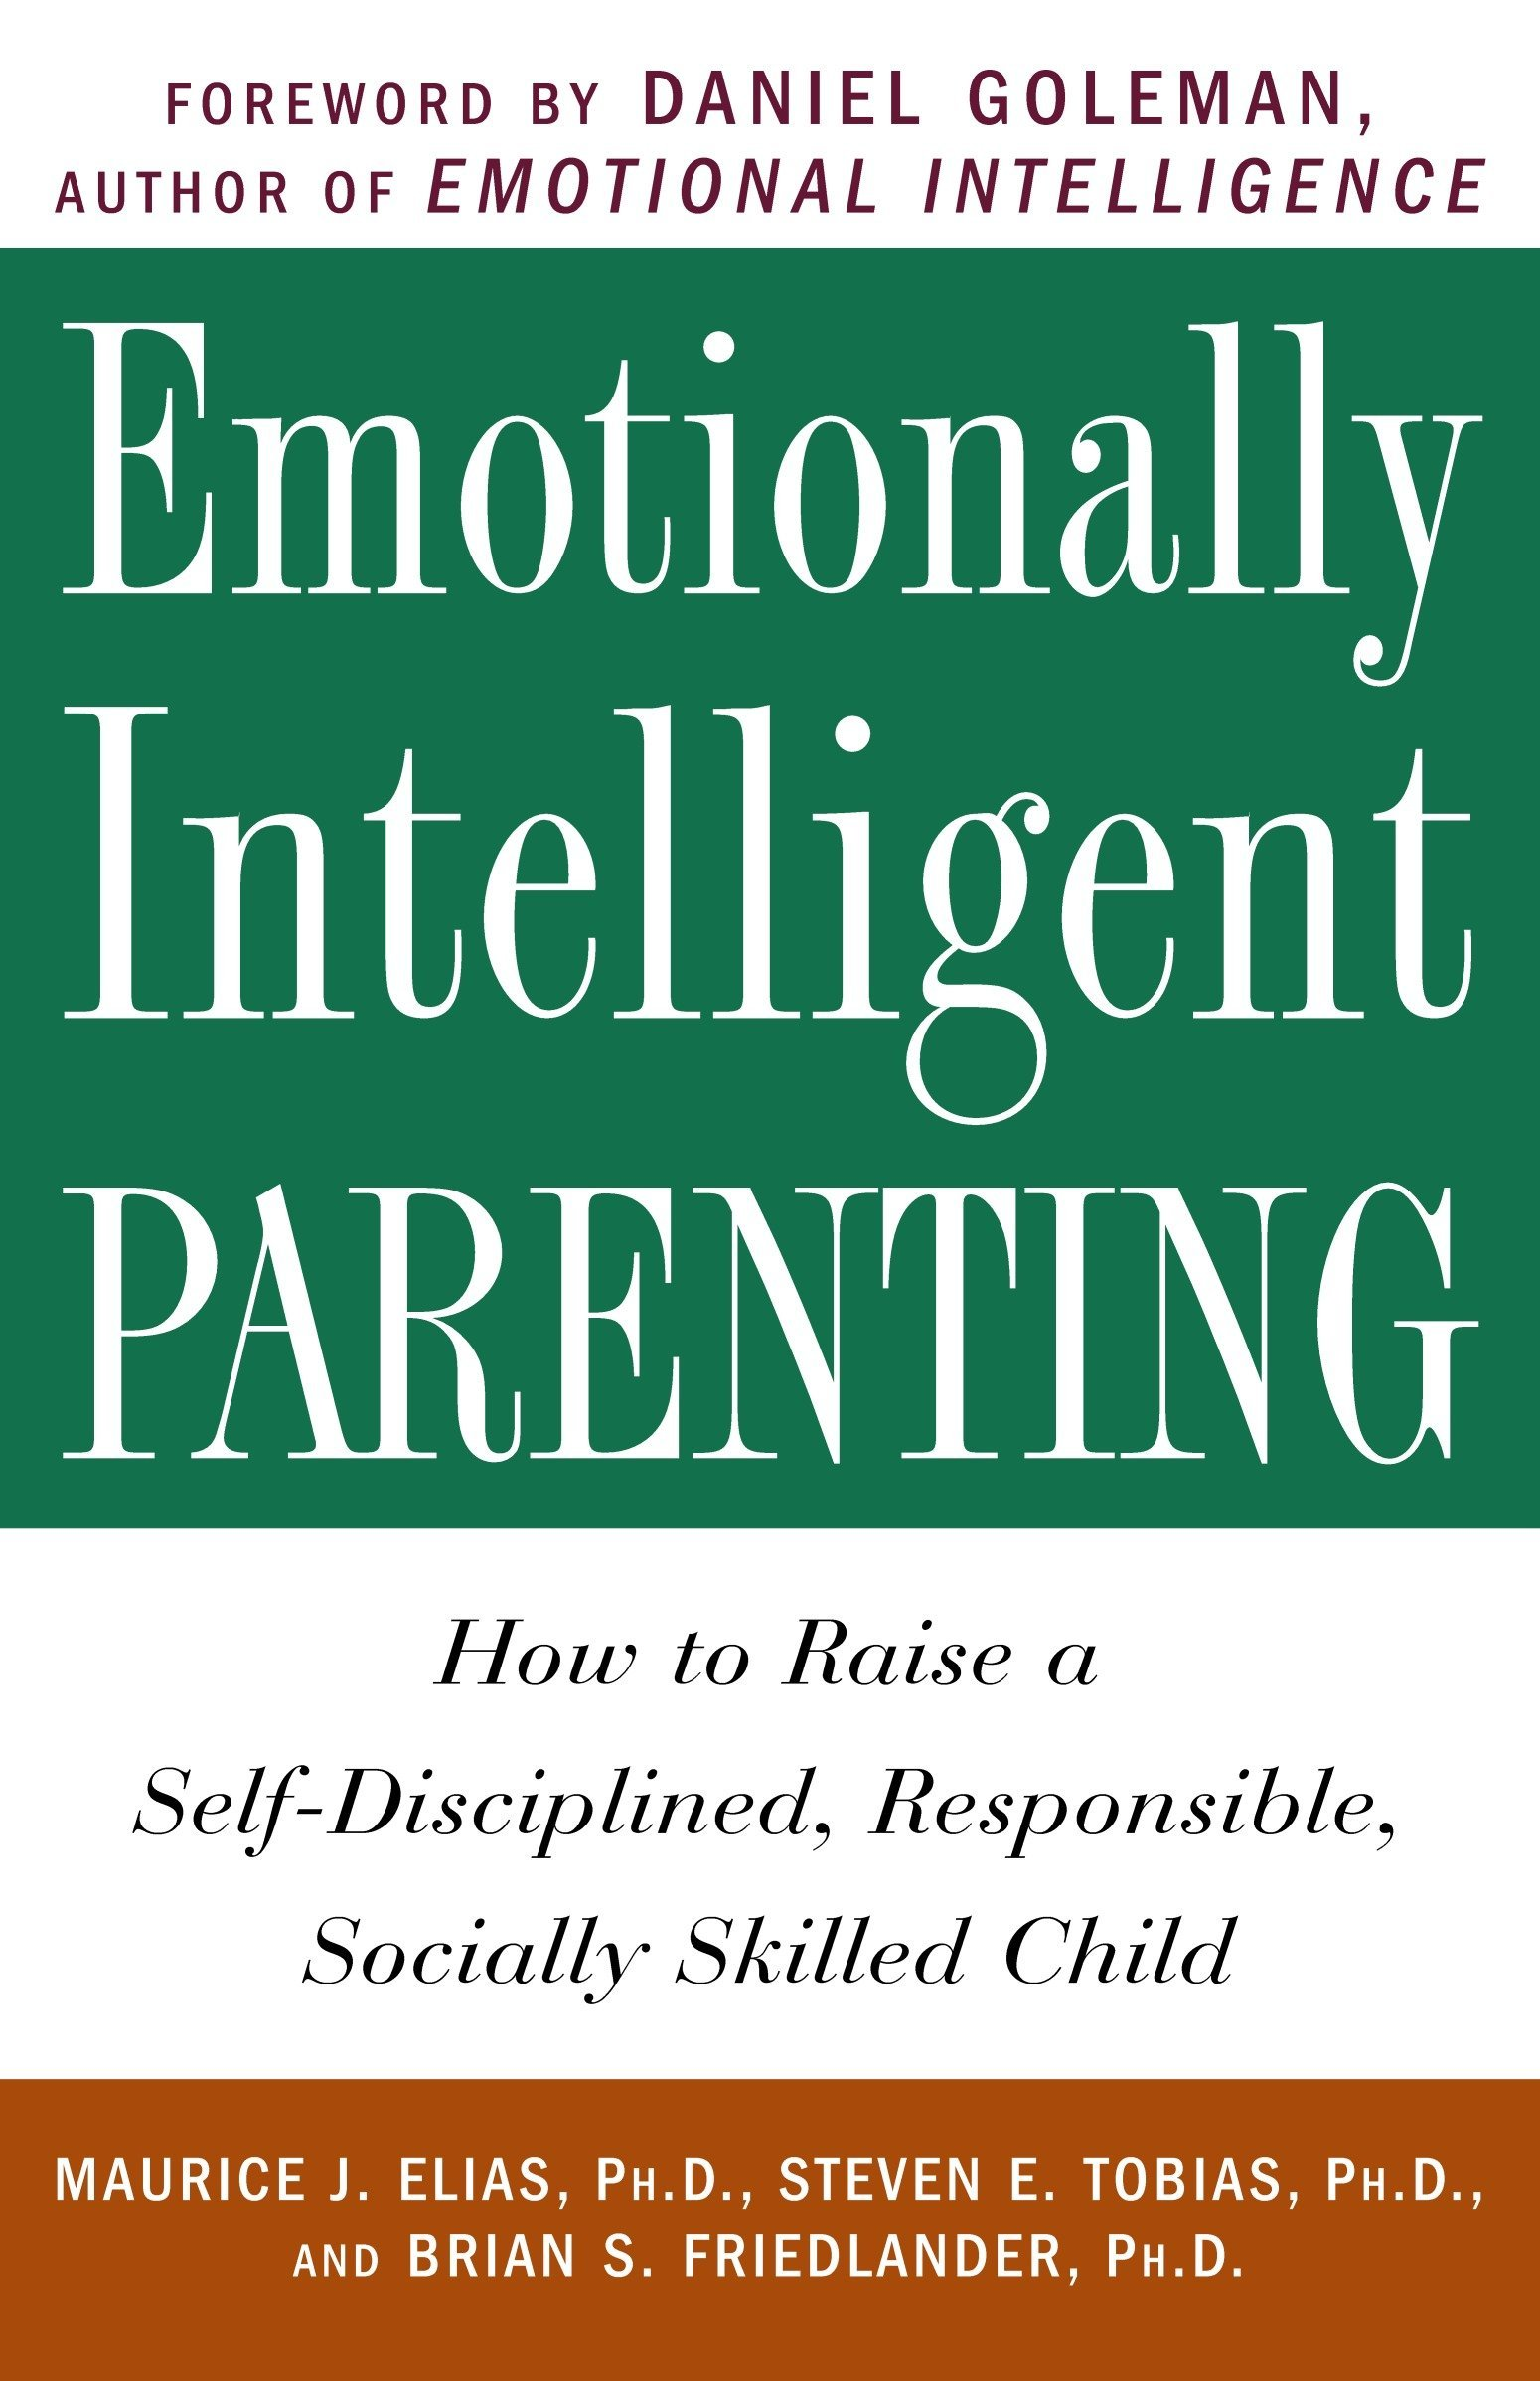 Read Online Emotionally Intelligent Parenting: How to Raise a Self-Disciplined, Responsible, Socially Skilled Child pdf